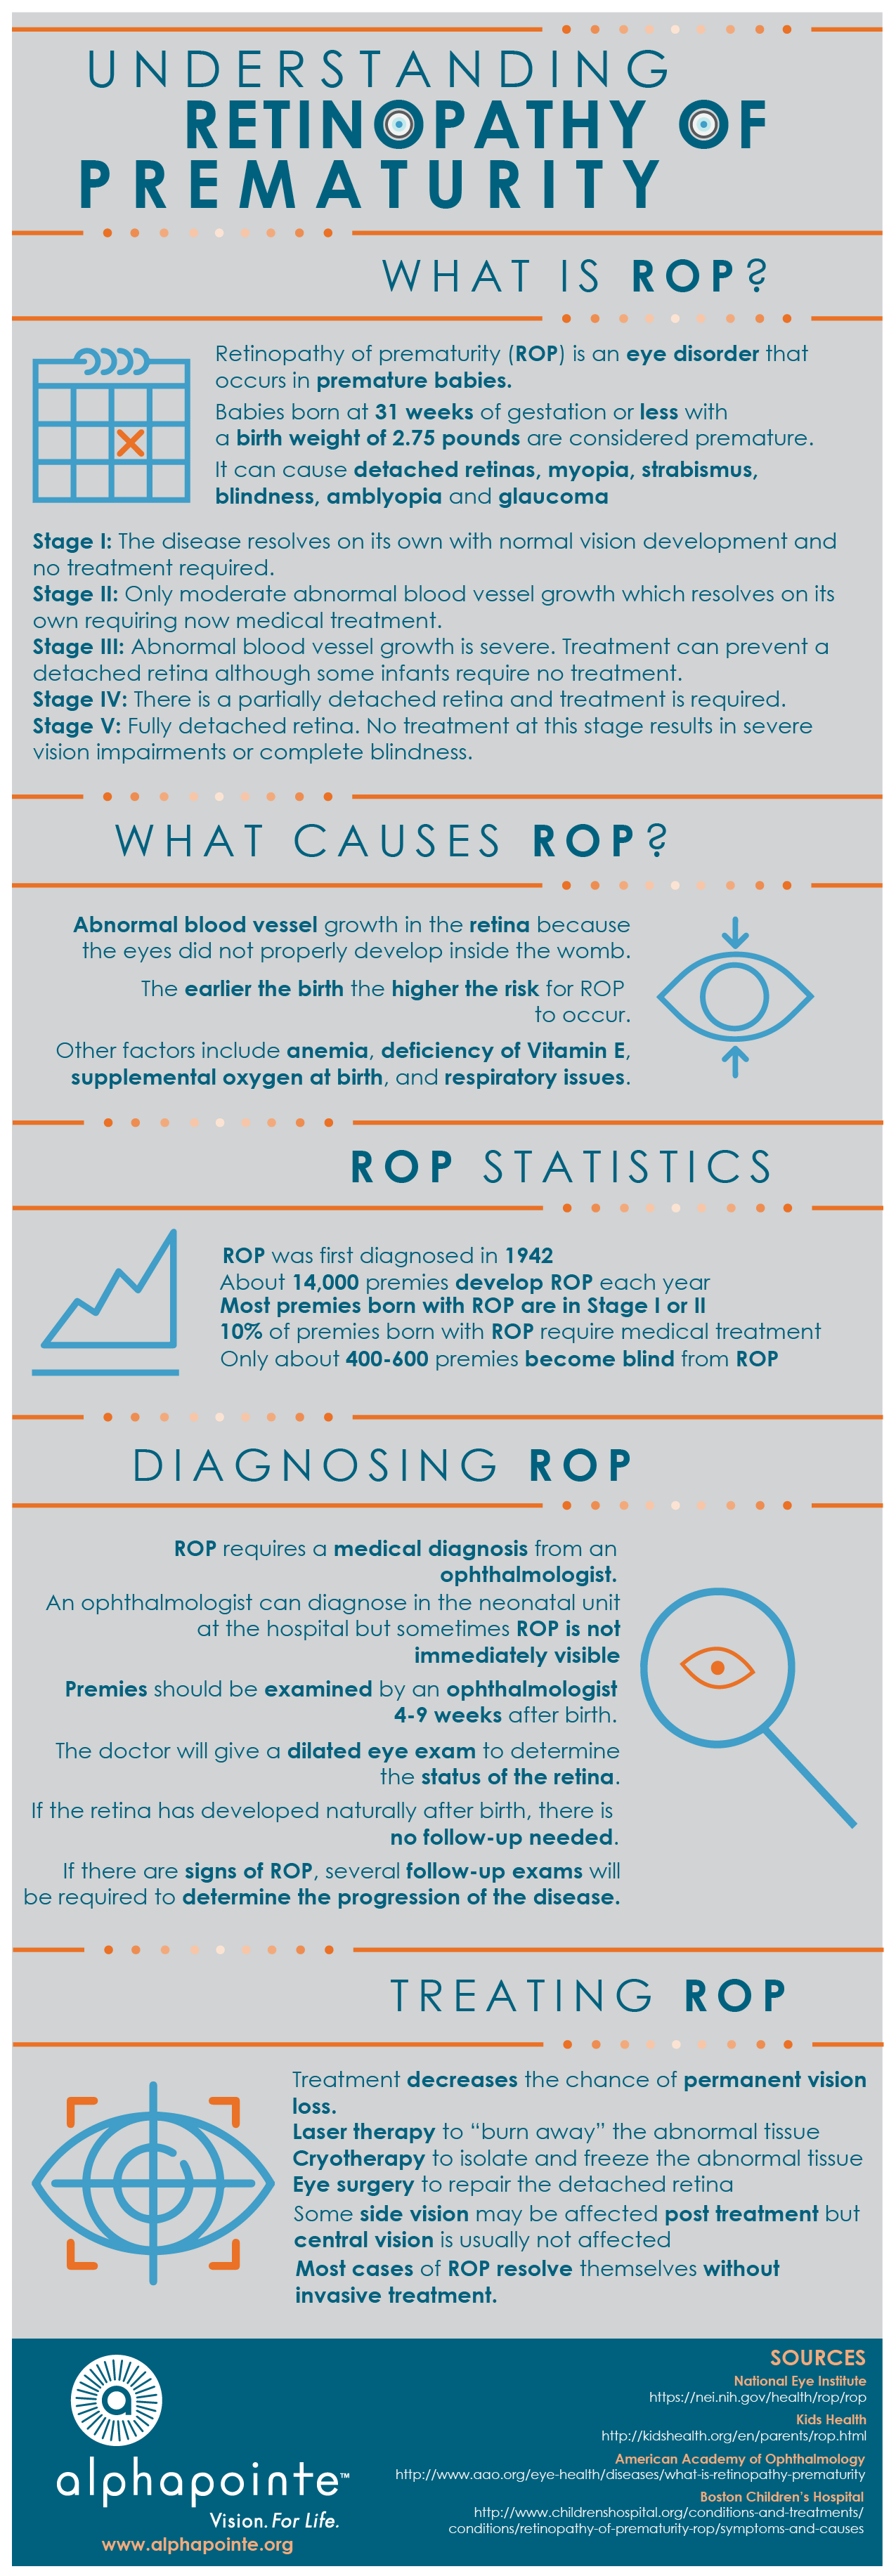 Understanding retinopathy of prematurity rop provided by